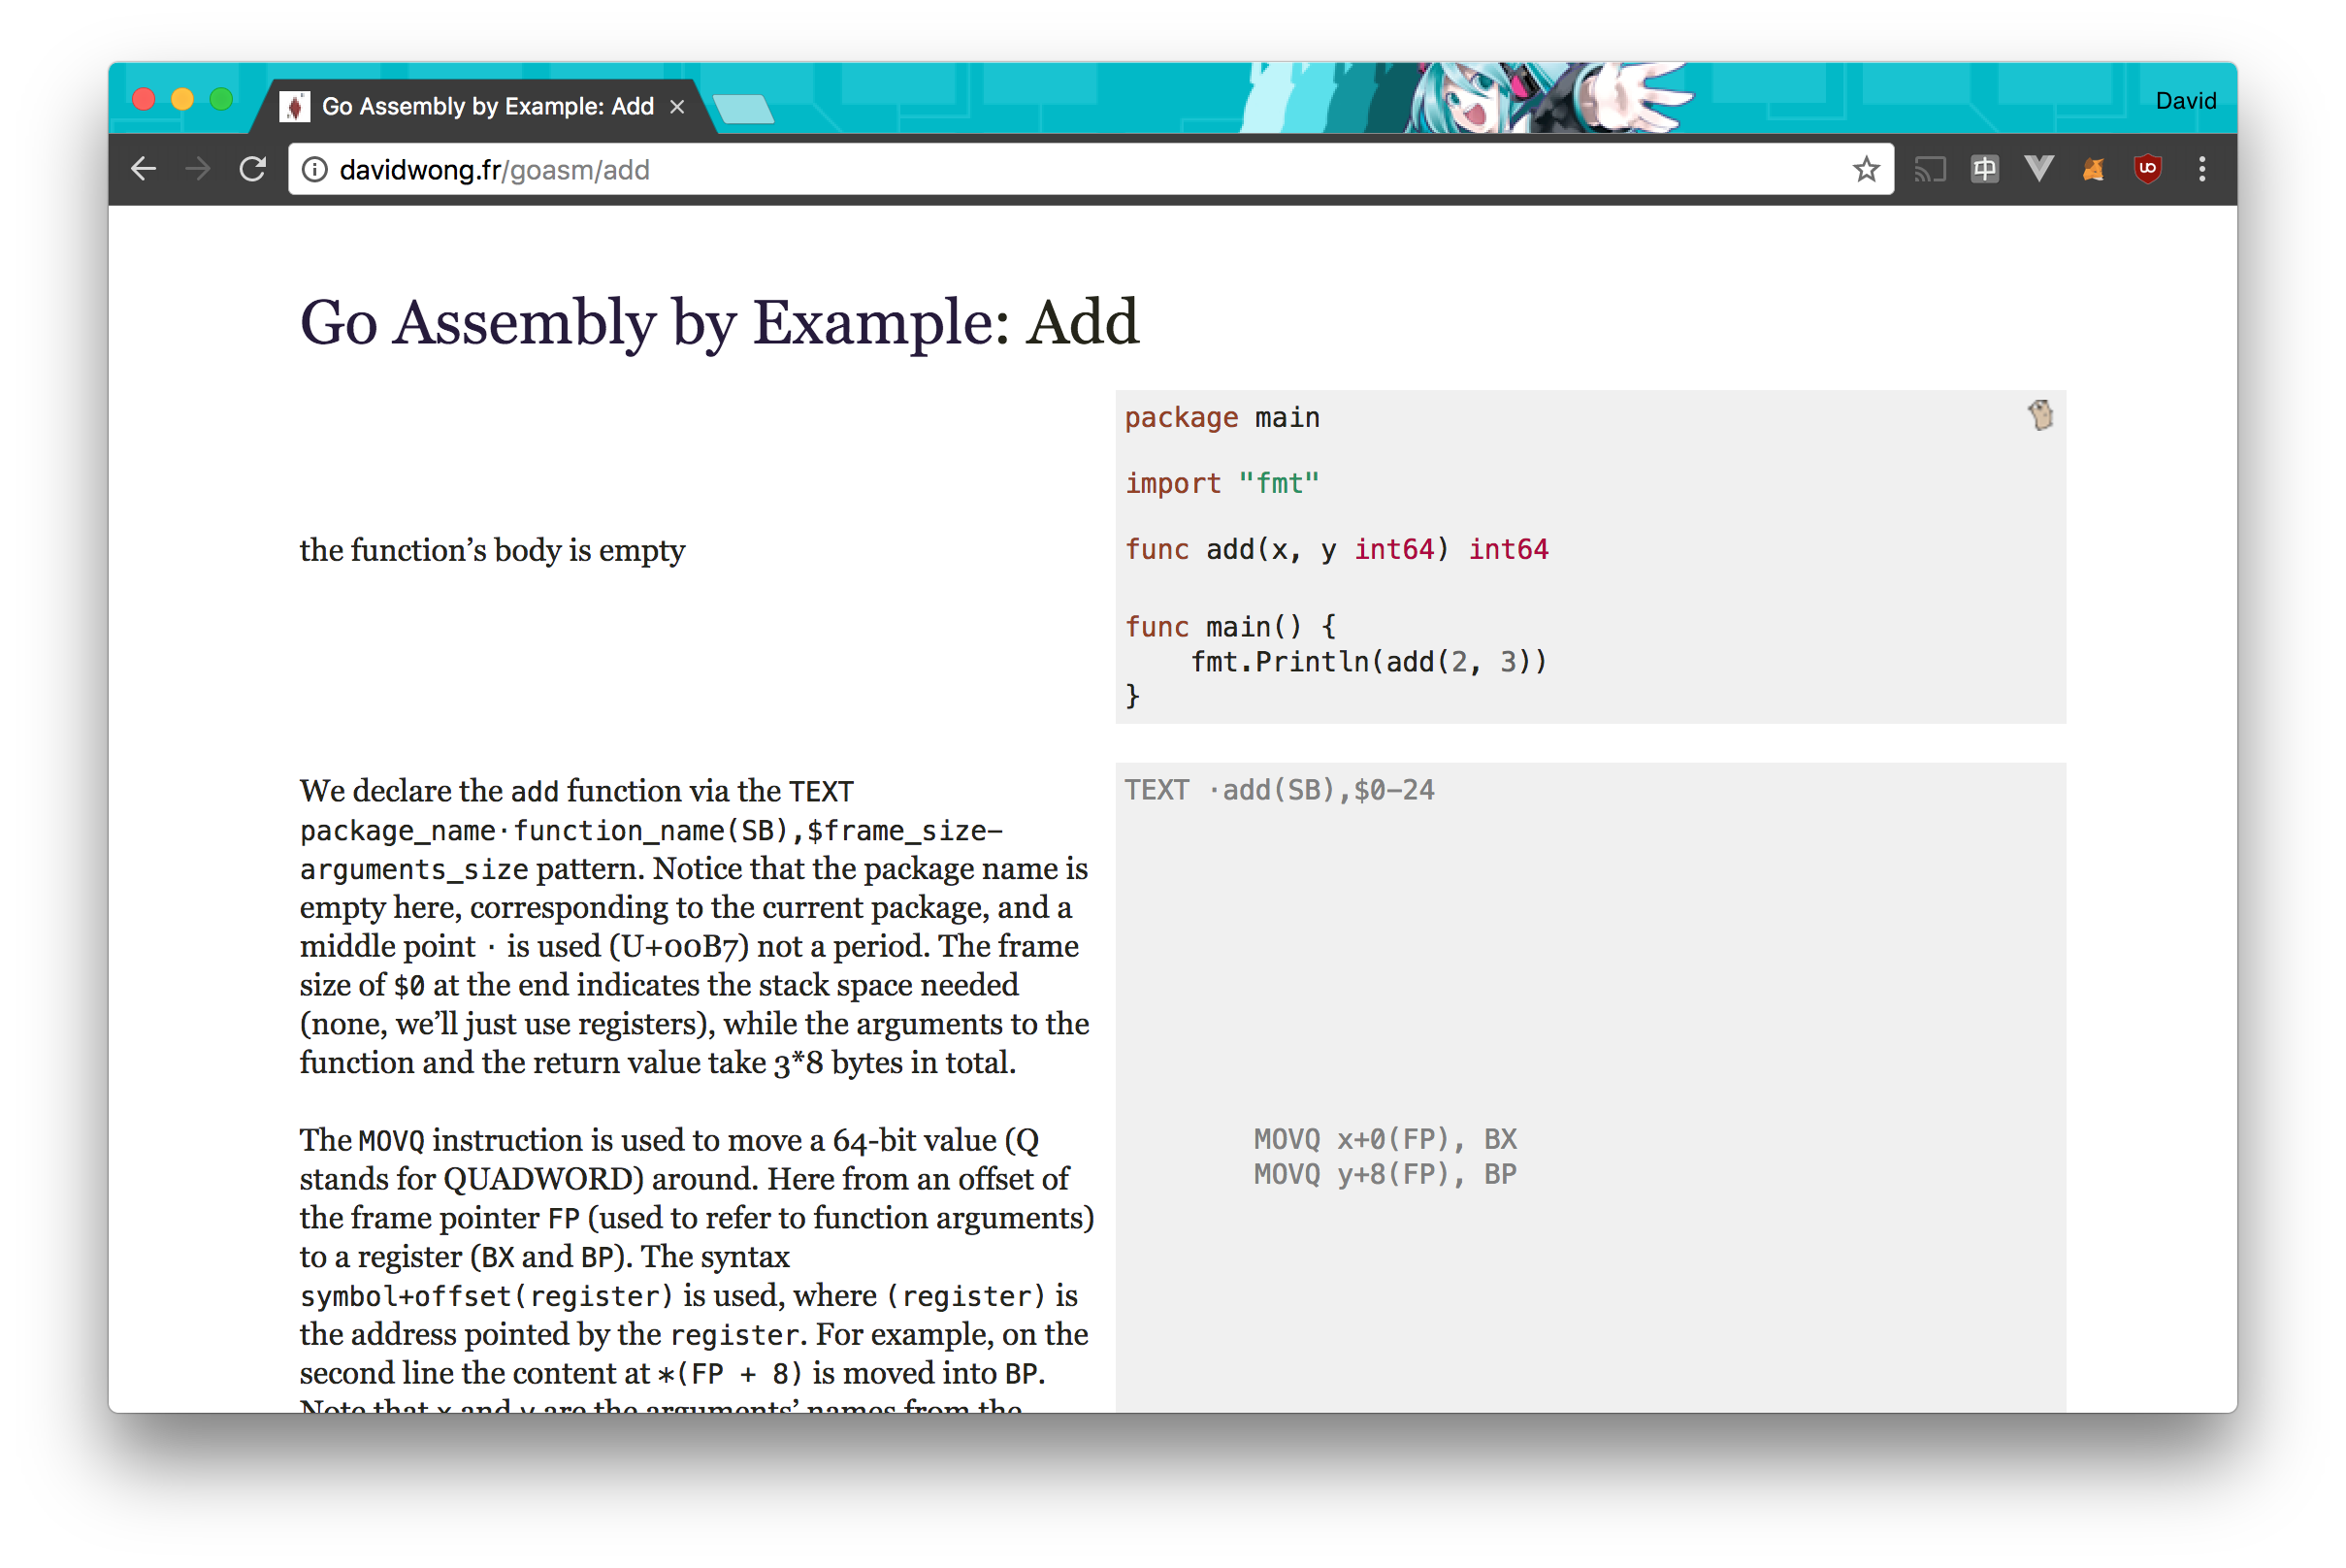 Go Assembly By Example